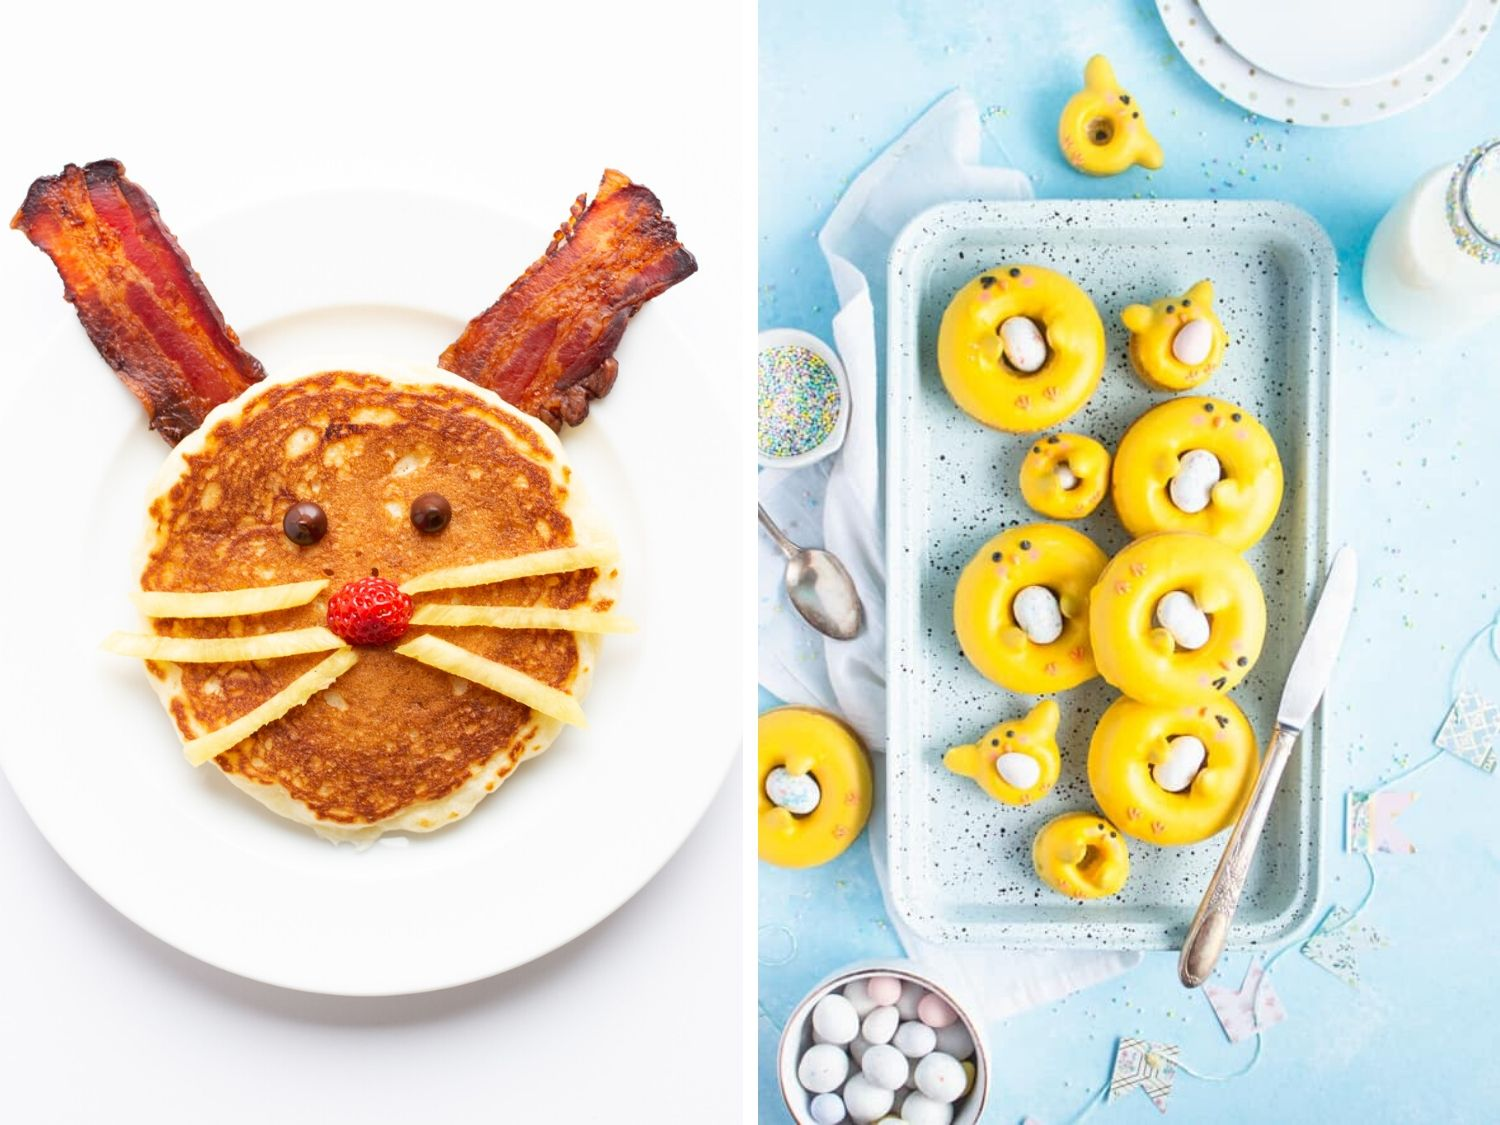 Collage of two photos showing an Easter bunny pancake and tray of yellow chick doughnuts.